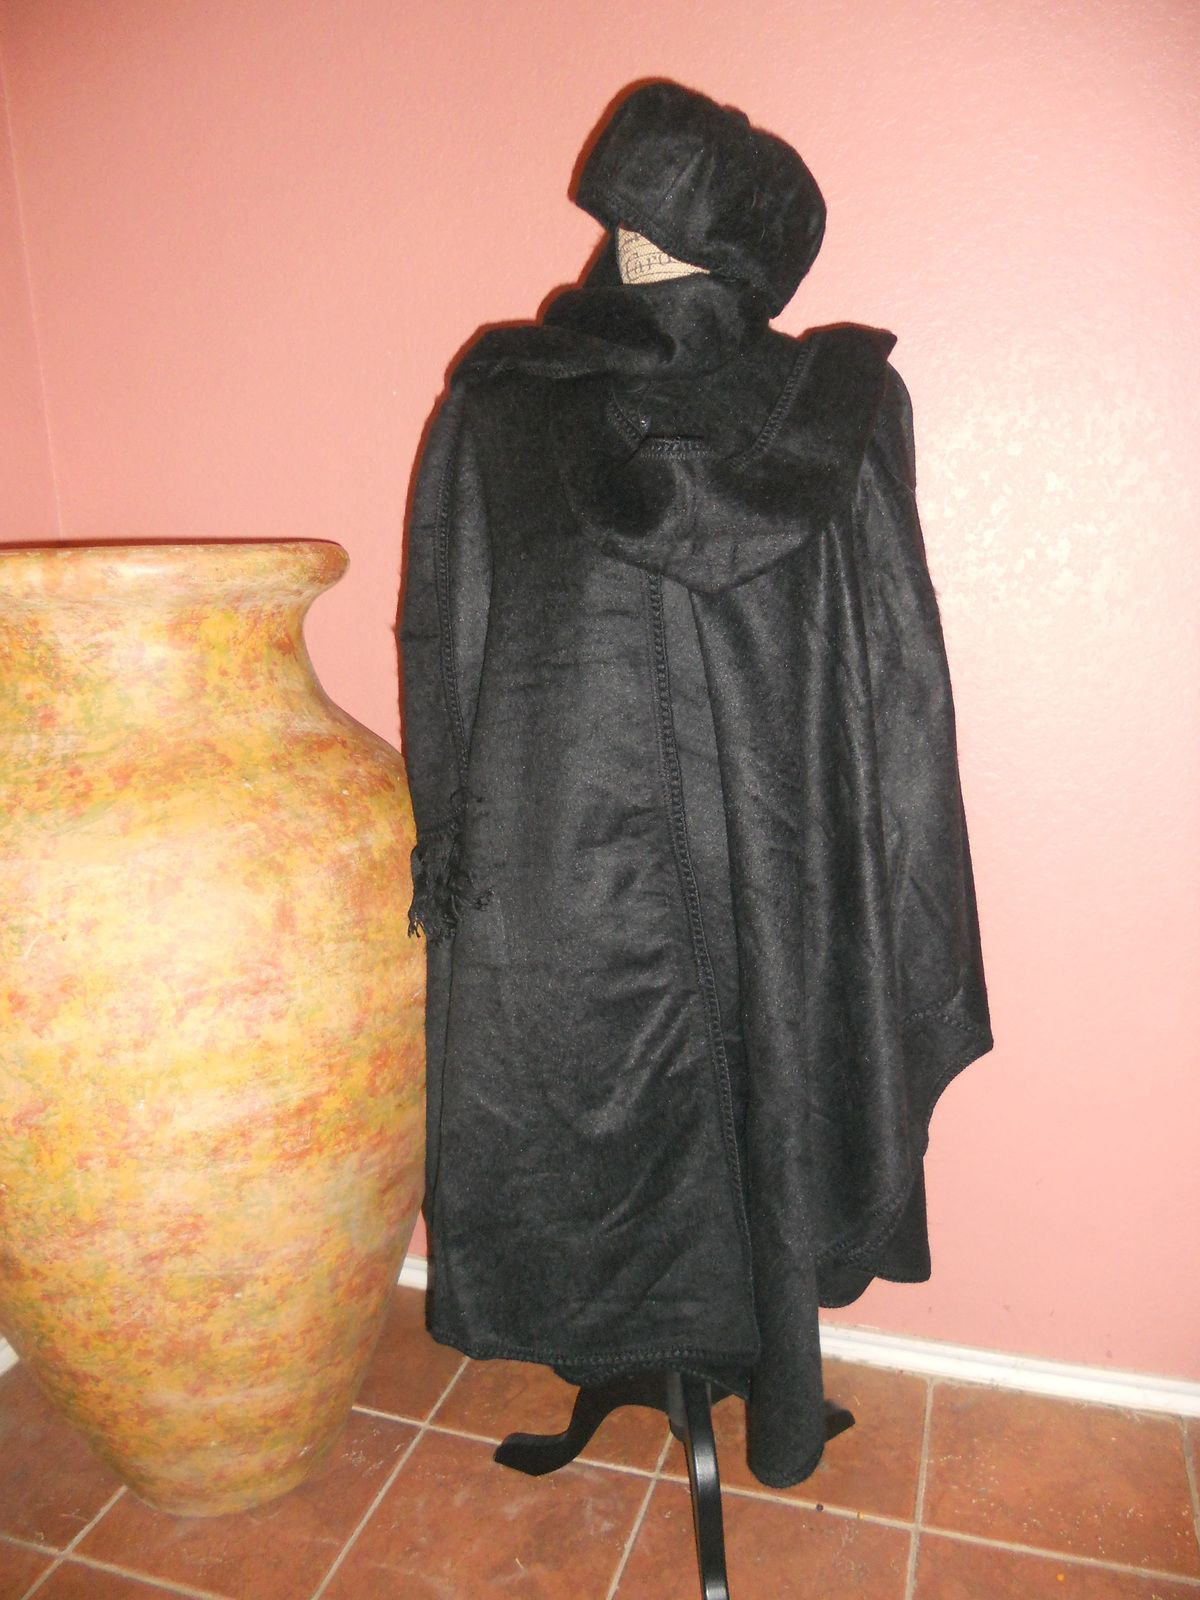 Peruvian 100 % Alpaca Collection Long Black Coat/cape $199.00 @Aspenandes Handcrafts Handcrafts